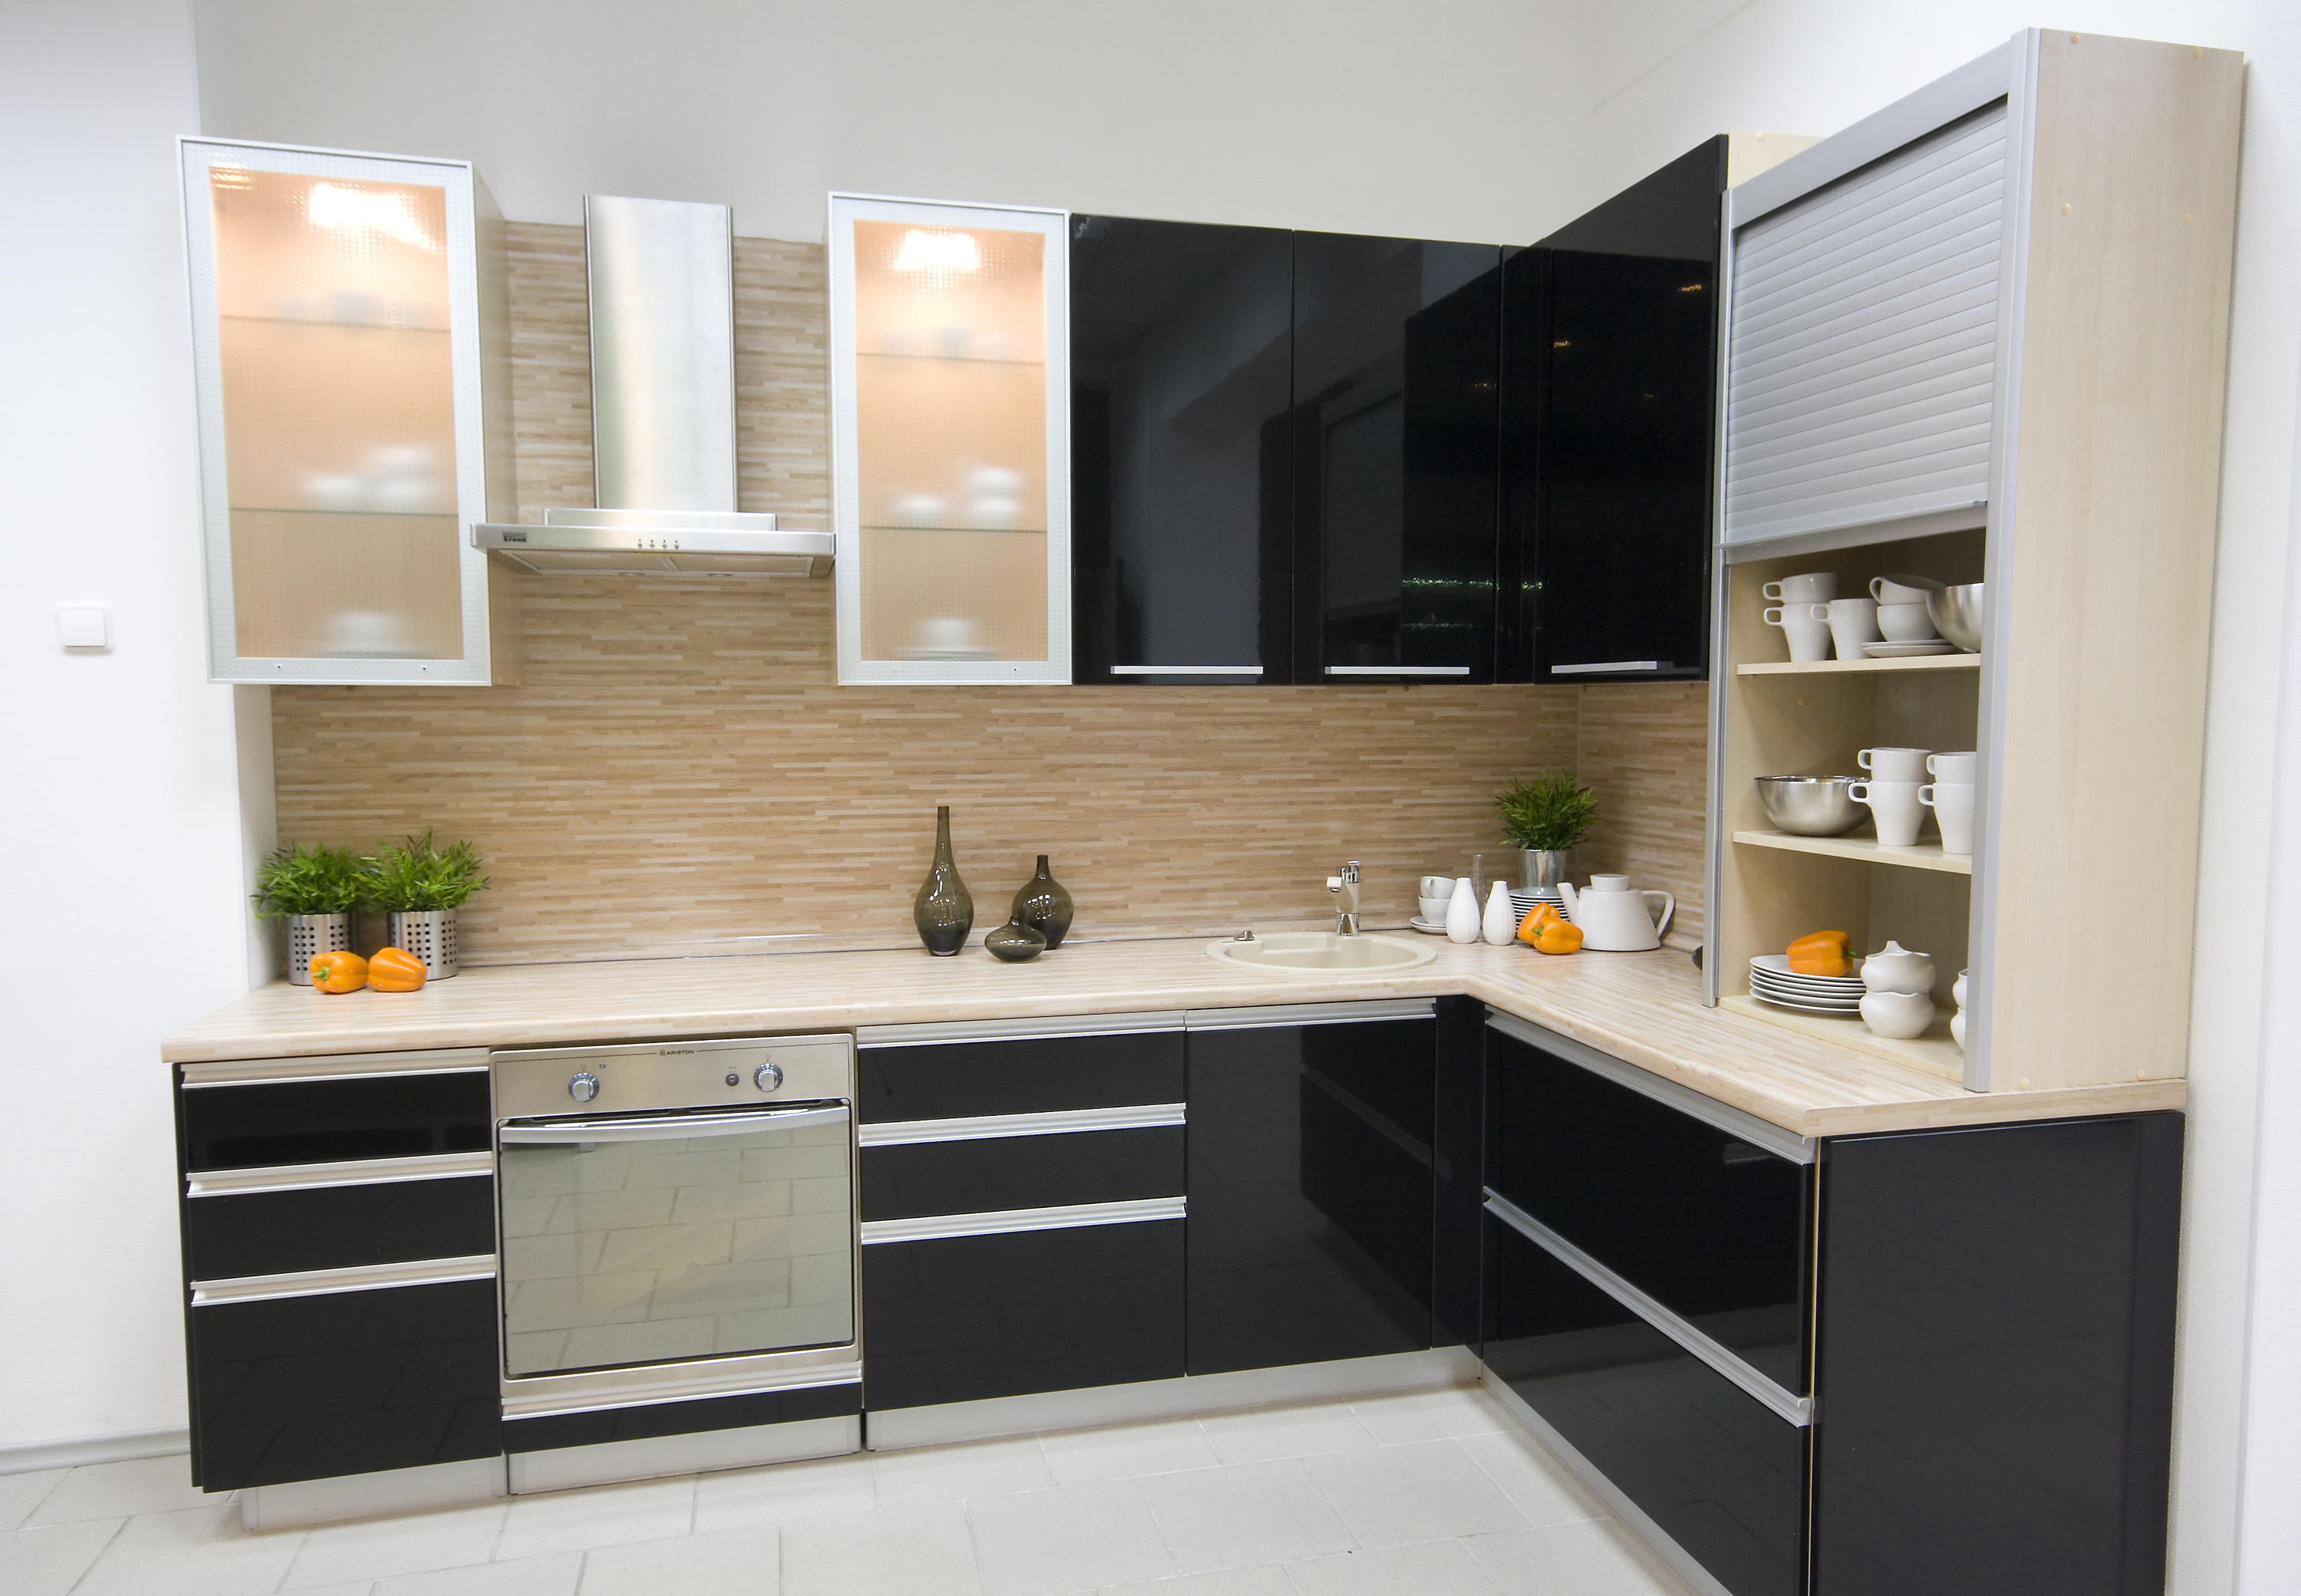 How to Choose the Best Cabinets for Your Kitchen